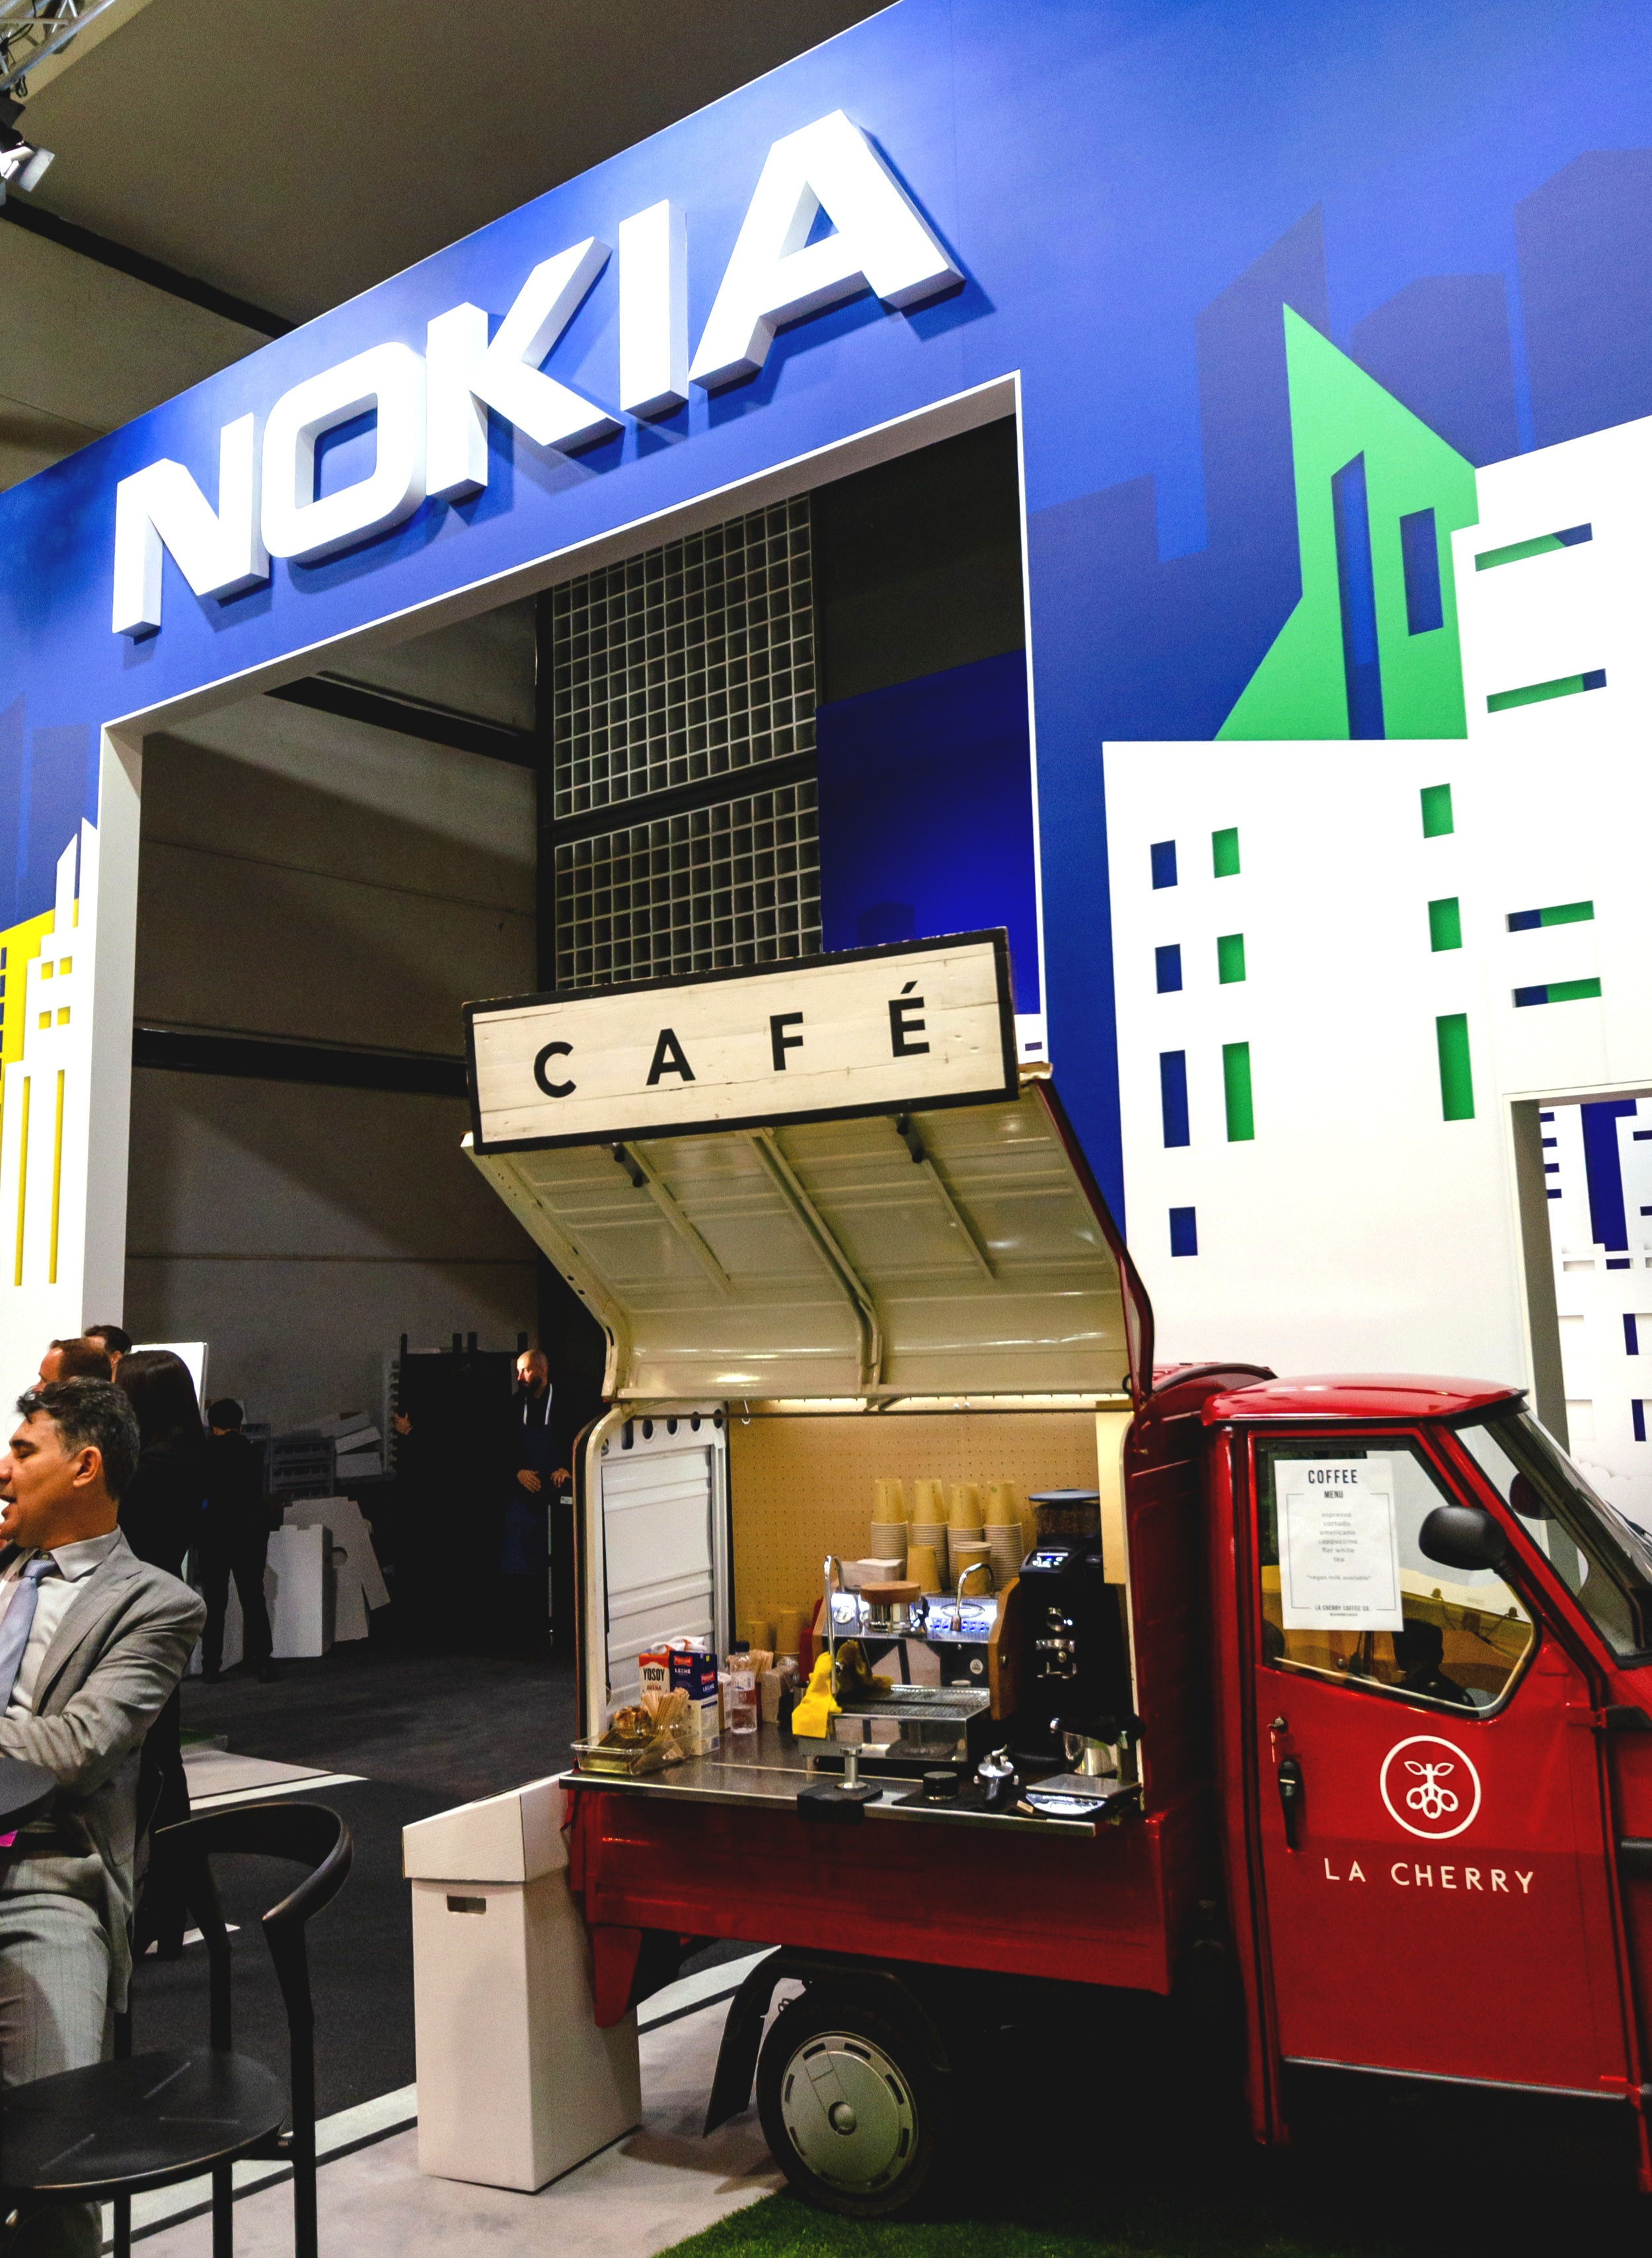 Mobile World Congress - This year we will be attending, for the second time, one of the biggest events in Spain; The Mobile World Congress. Our coffee truck will be located in three different spots of the event representing multinational brands.@nokia @telecoming #MWC19